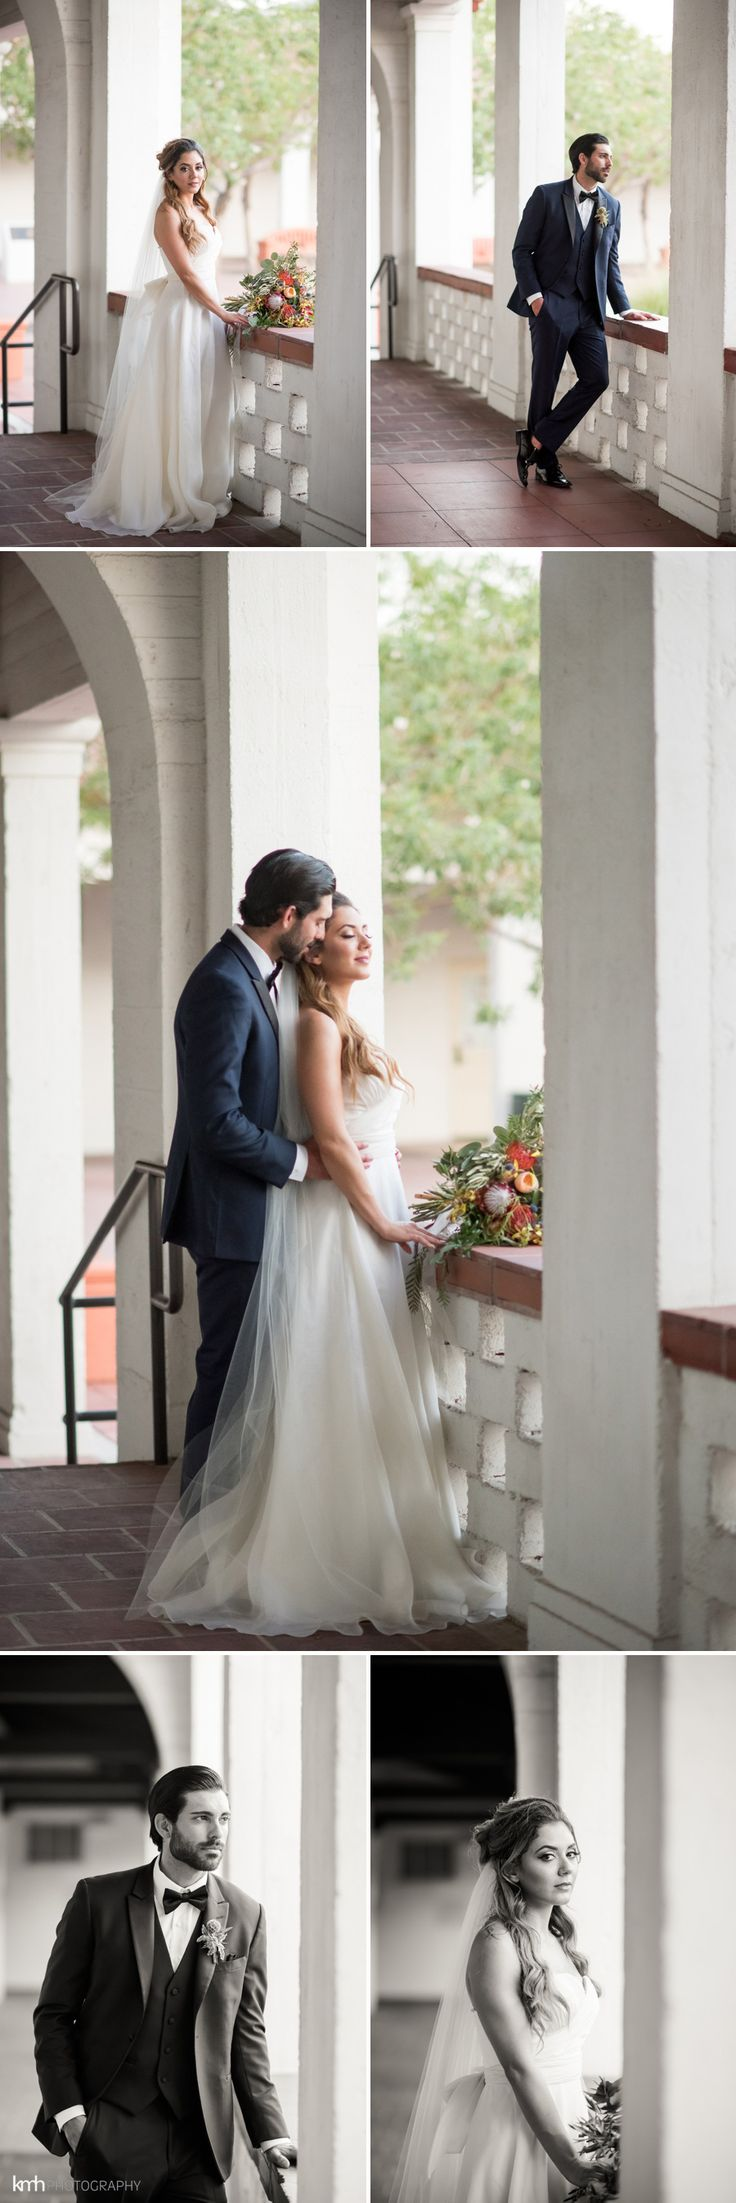 Romantic, Modern Wedding Inspiration at Historic Fifth Street School Wedding in Las Vegas, NV | KMH Photography